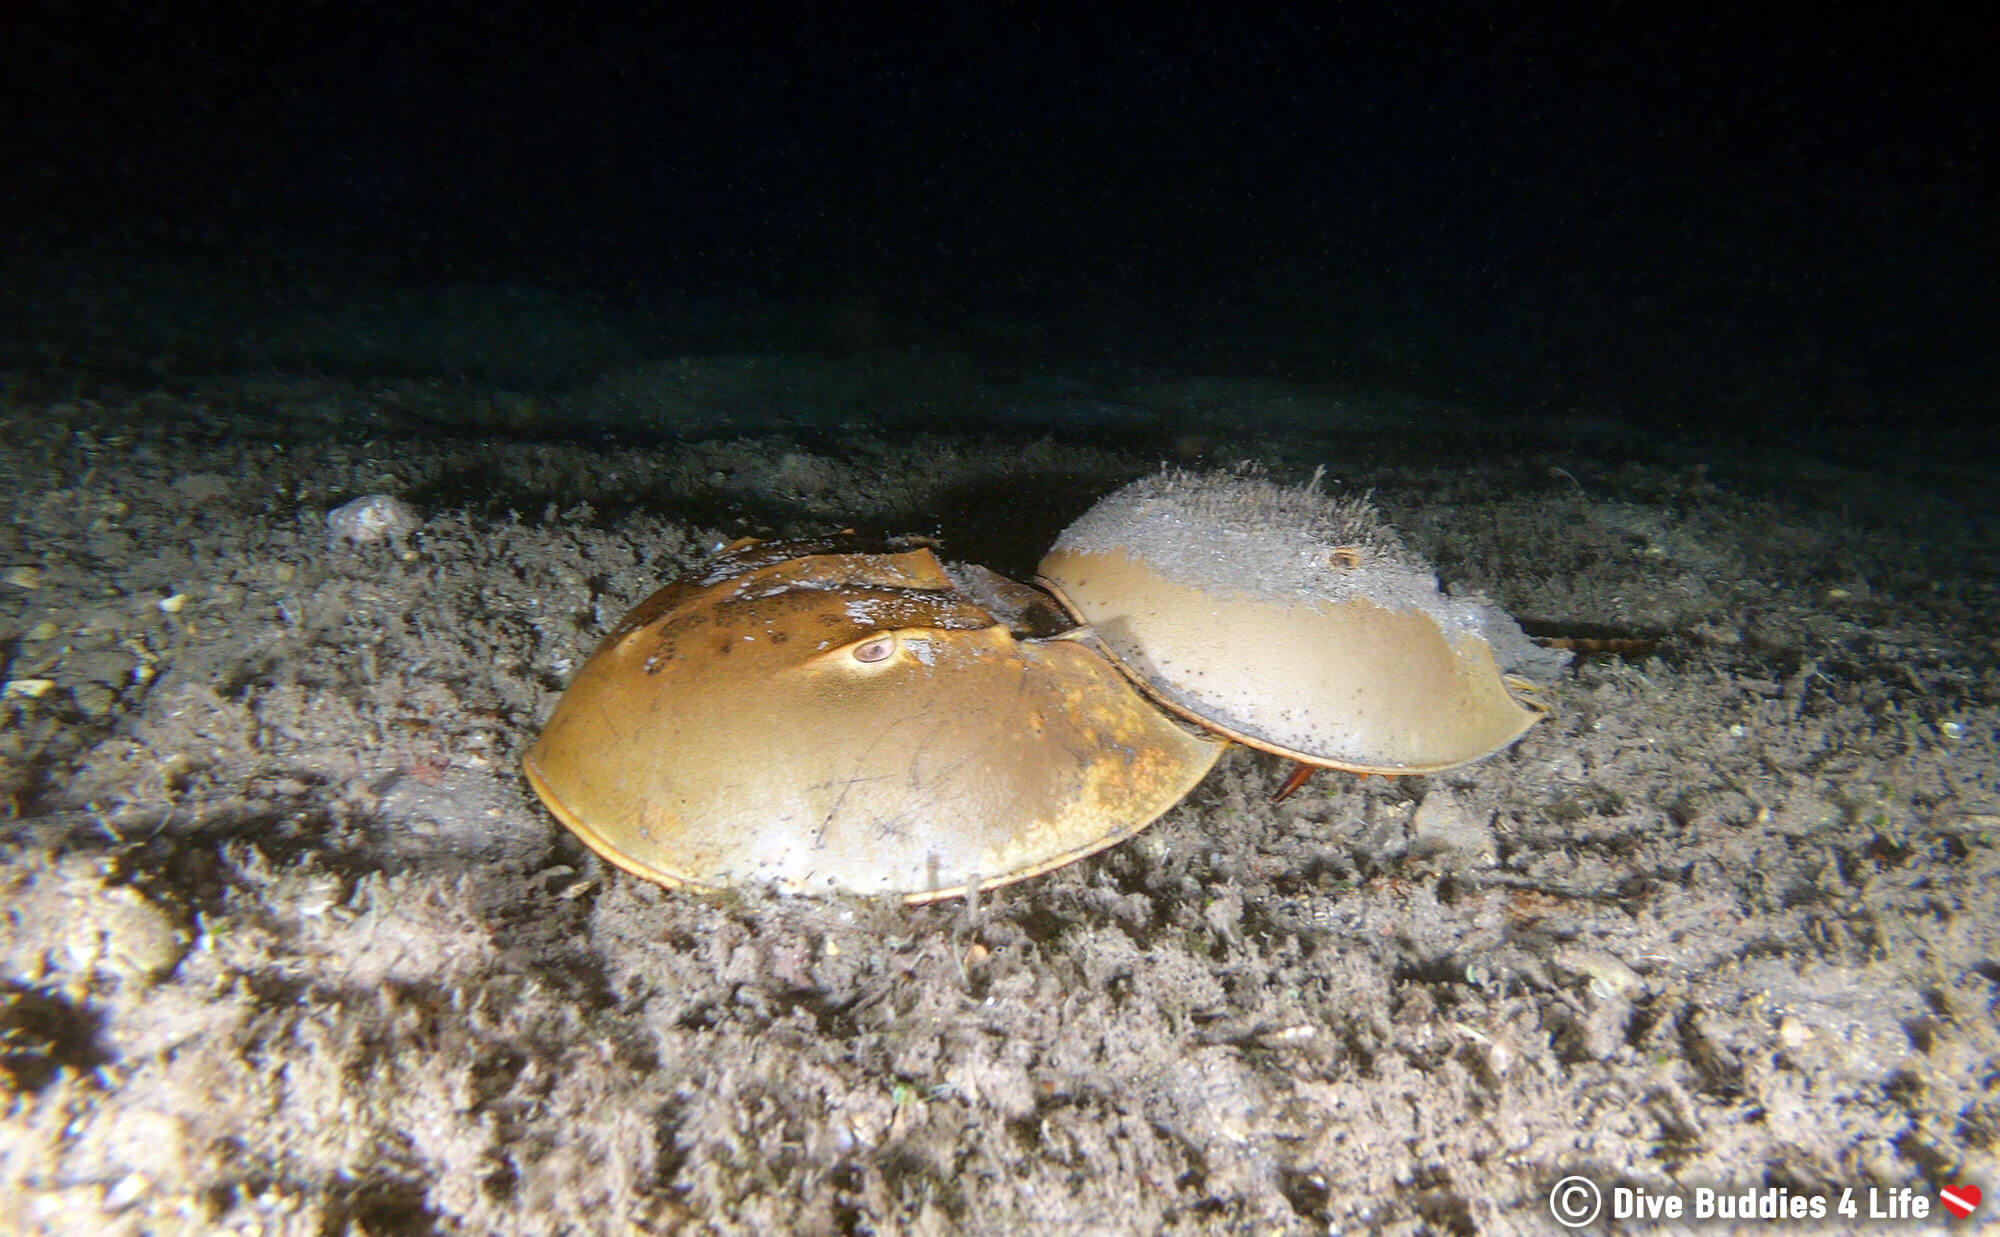 Two Mating Horseshoe Crabs At Blue Heron Bridge Photographed With A GoPro Camera, USA